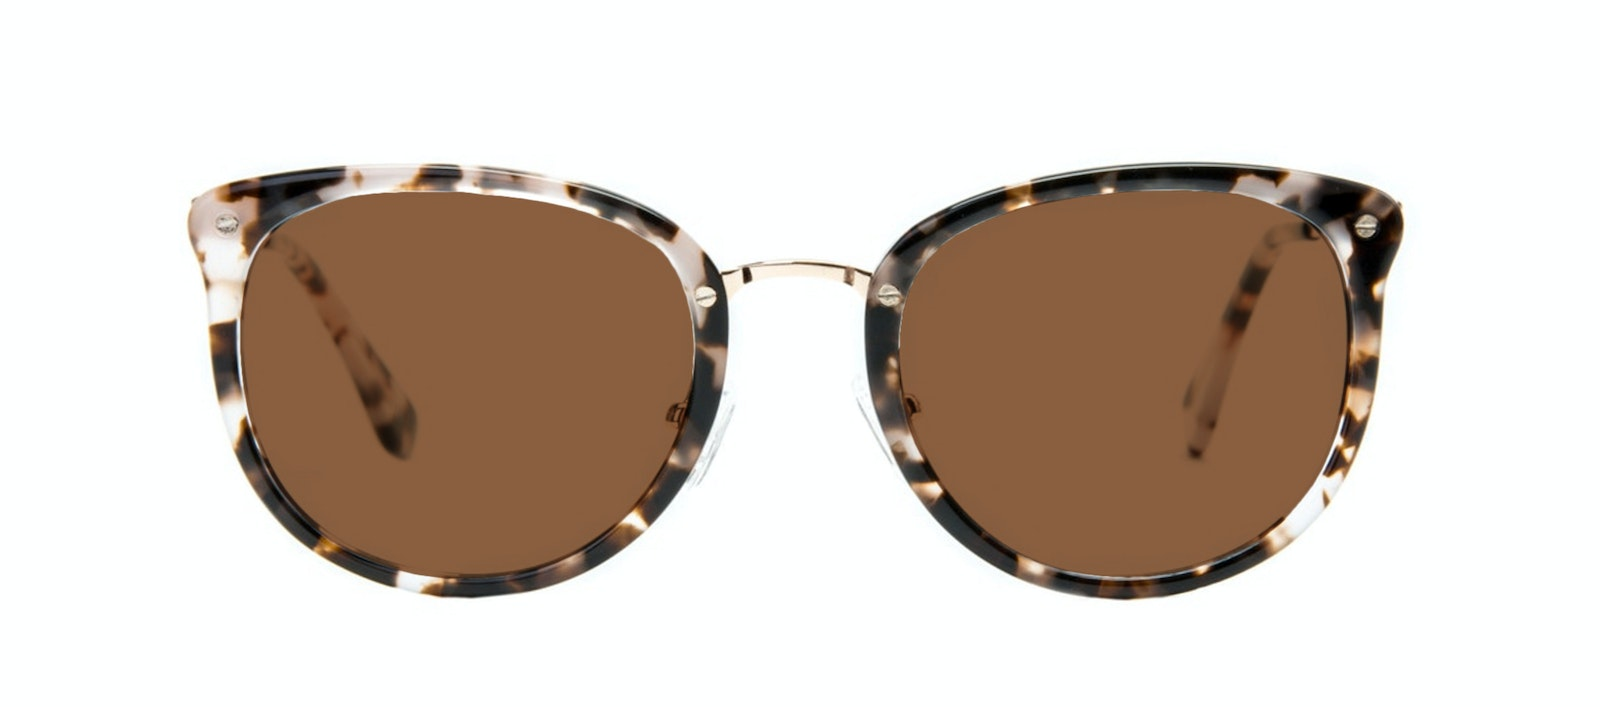 Affordable Fashion Glasses Square Round Sunglasses Women Amaze Mocha Tortoise Front